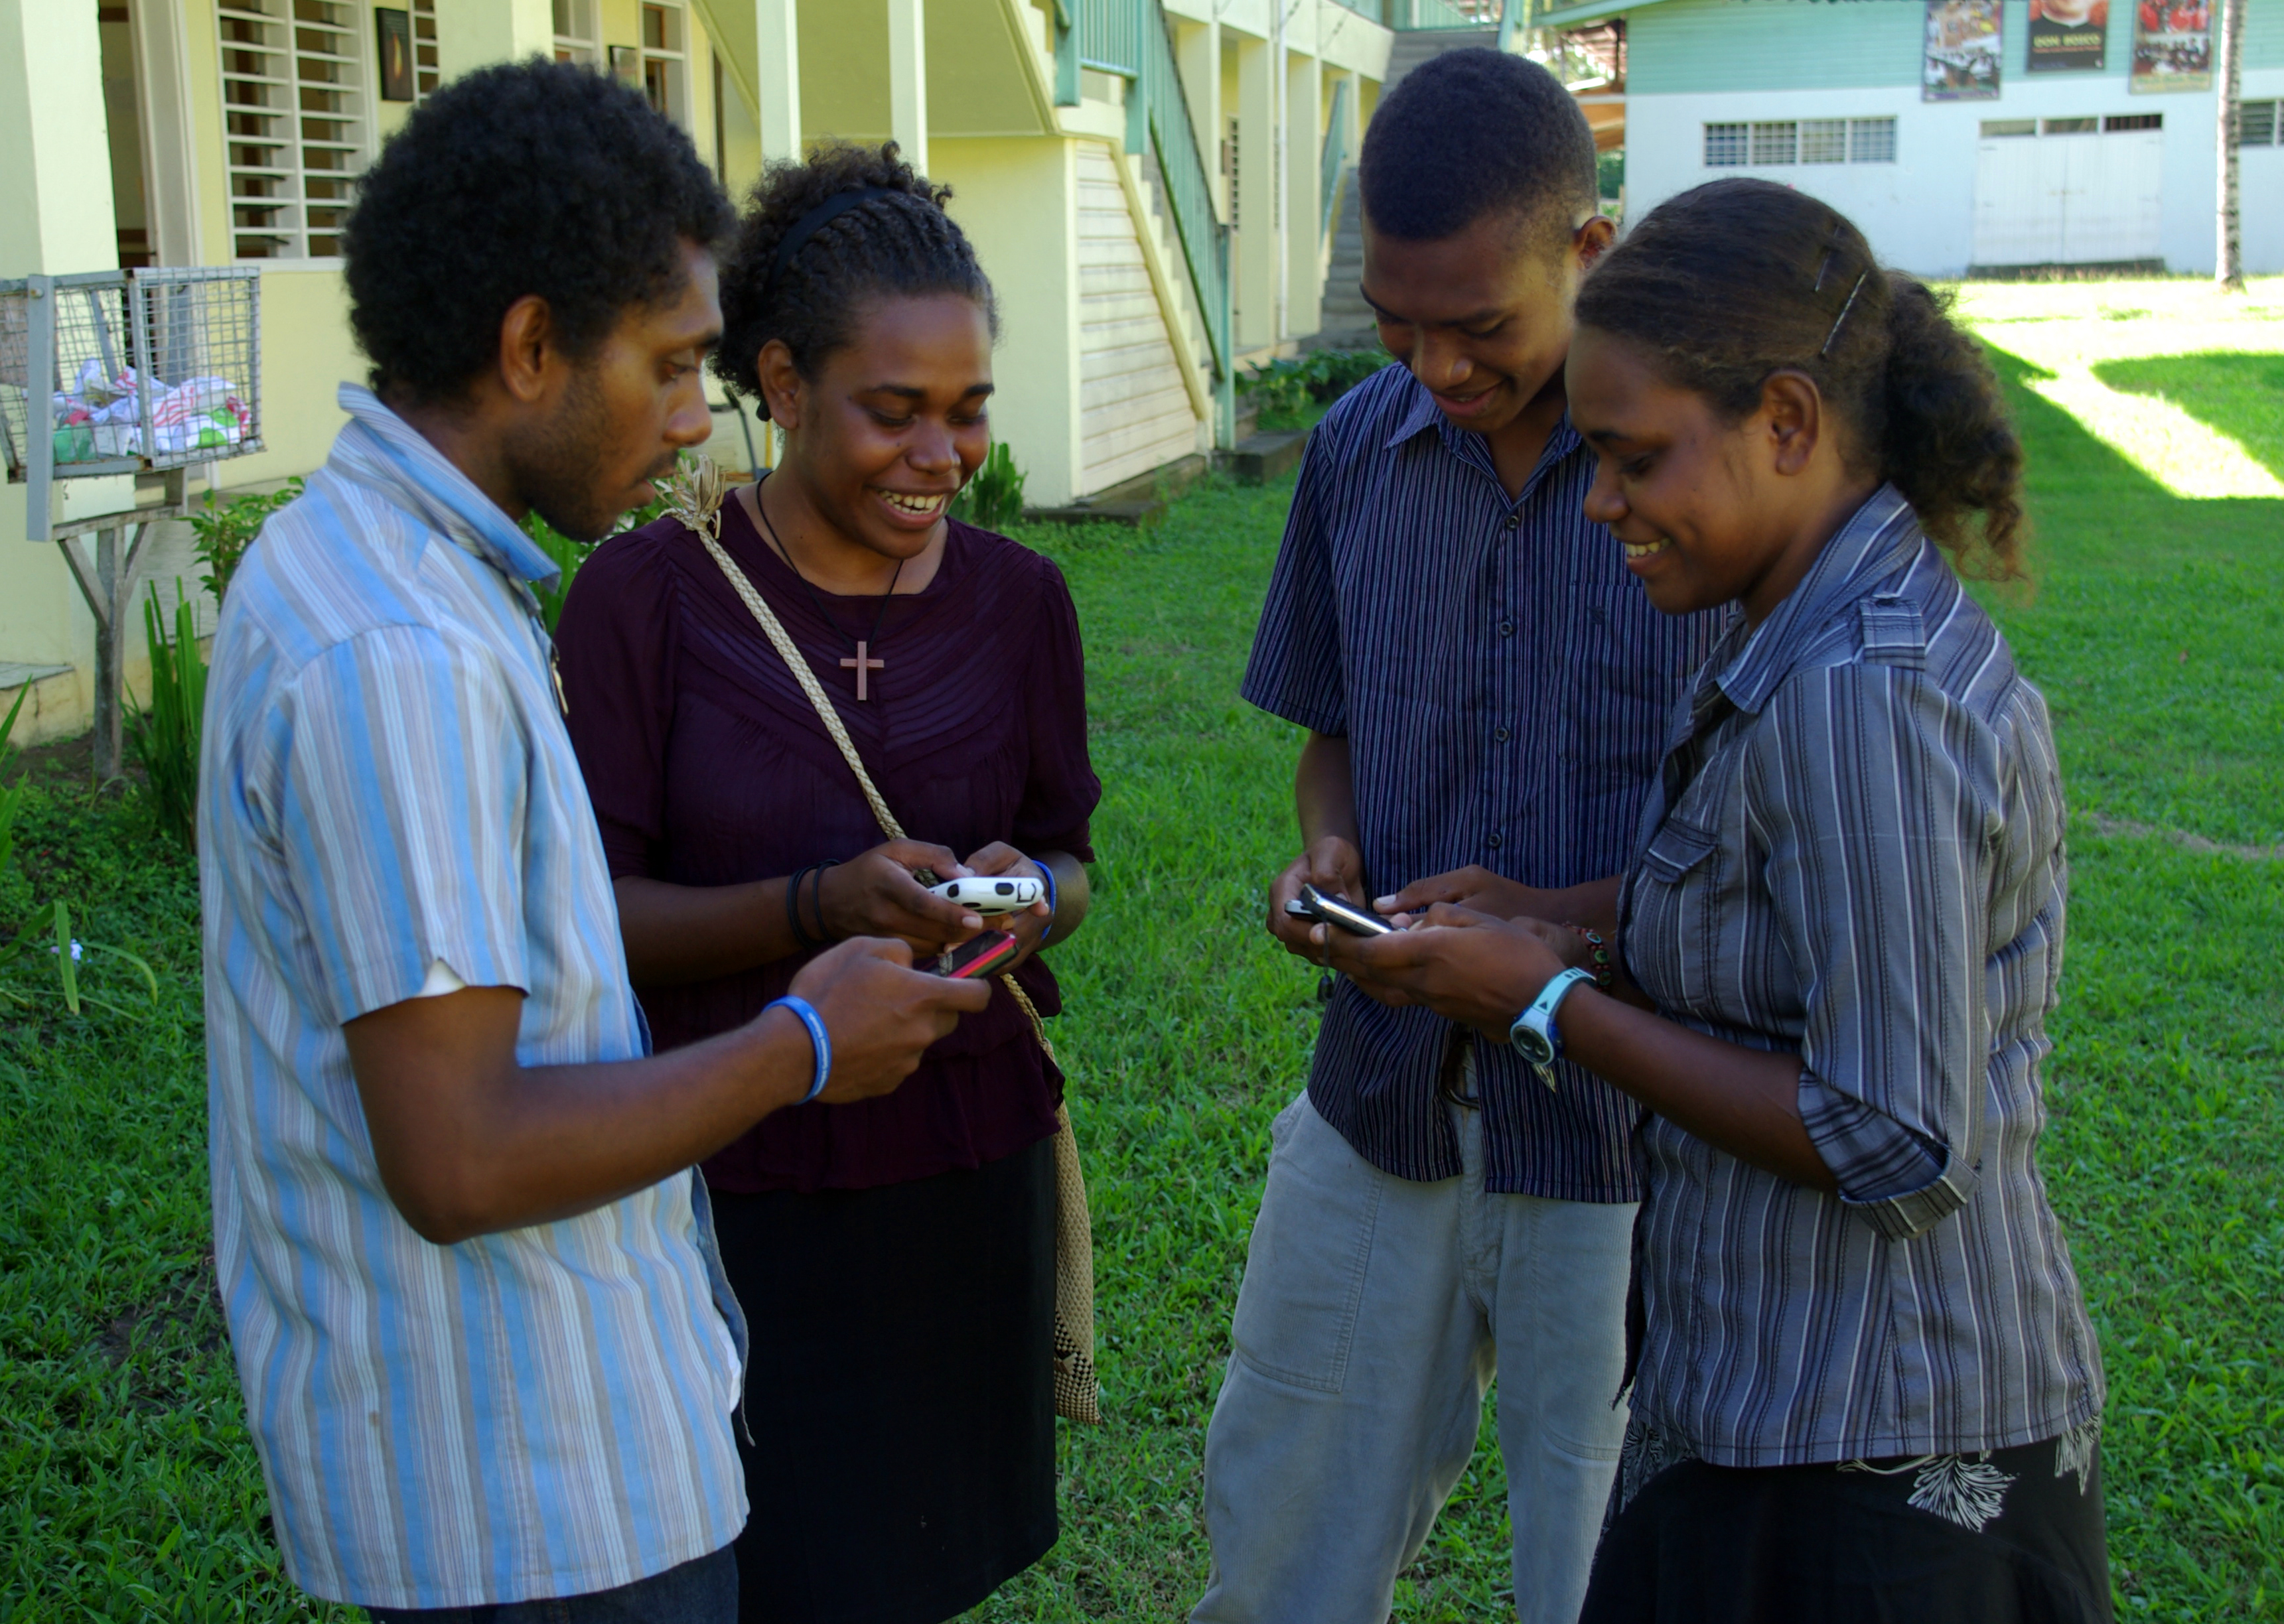 Group_of_young_people_texting_on_mobile_phones._%2810699648676%29.jpg?profile=RESIZE_400x